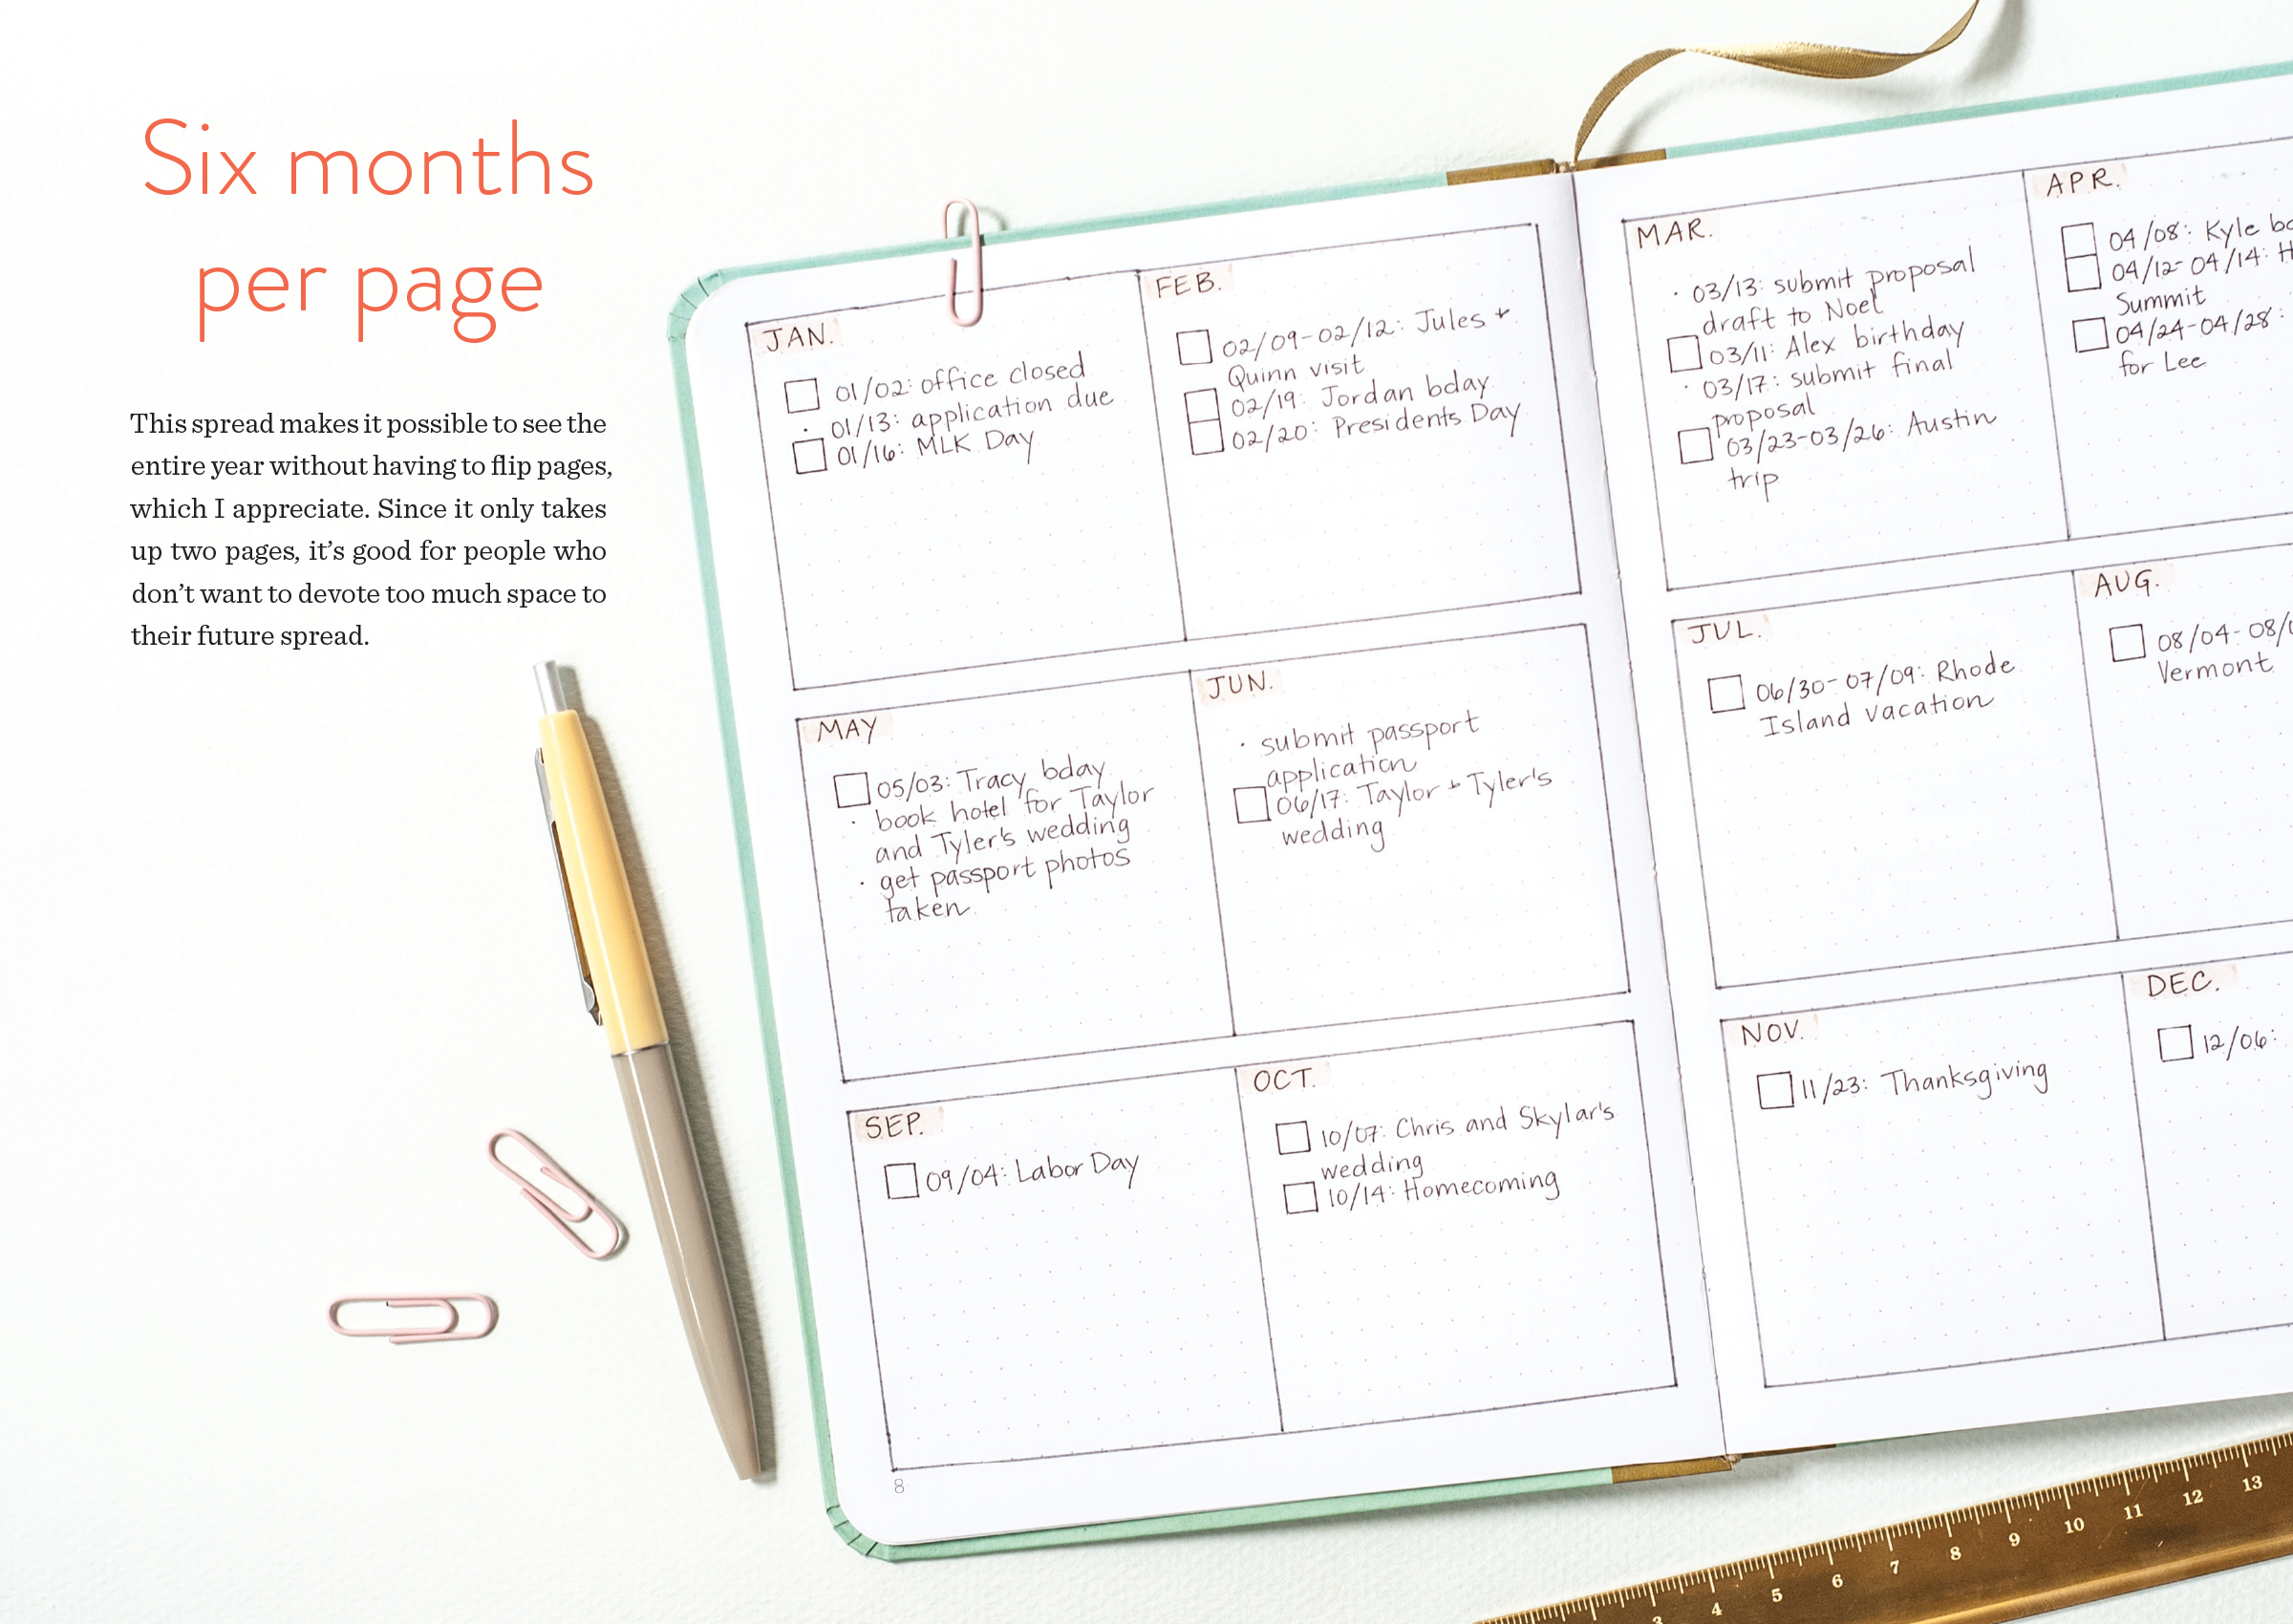 Dot Calendar Bullet Journal : Dot journaling—a practical guide workman publishing